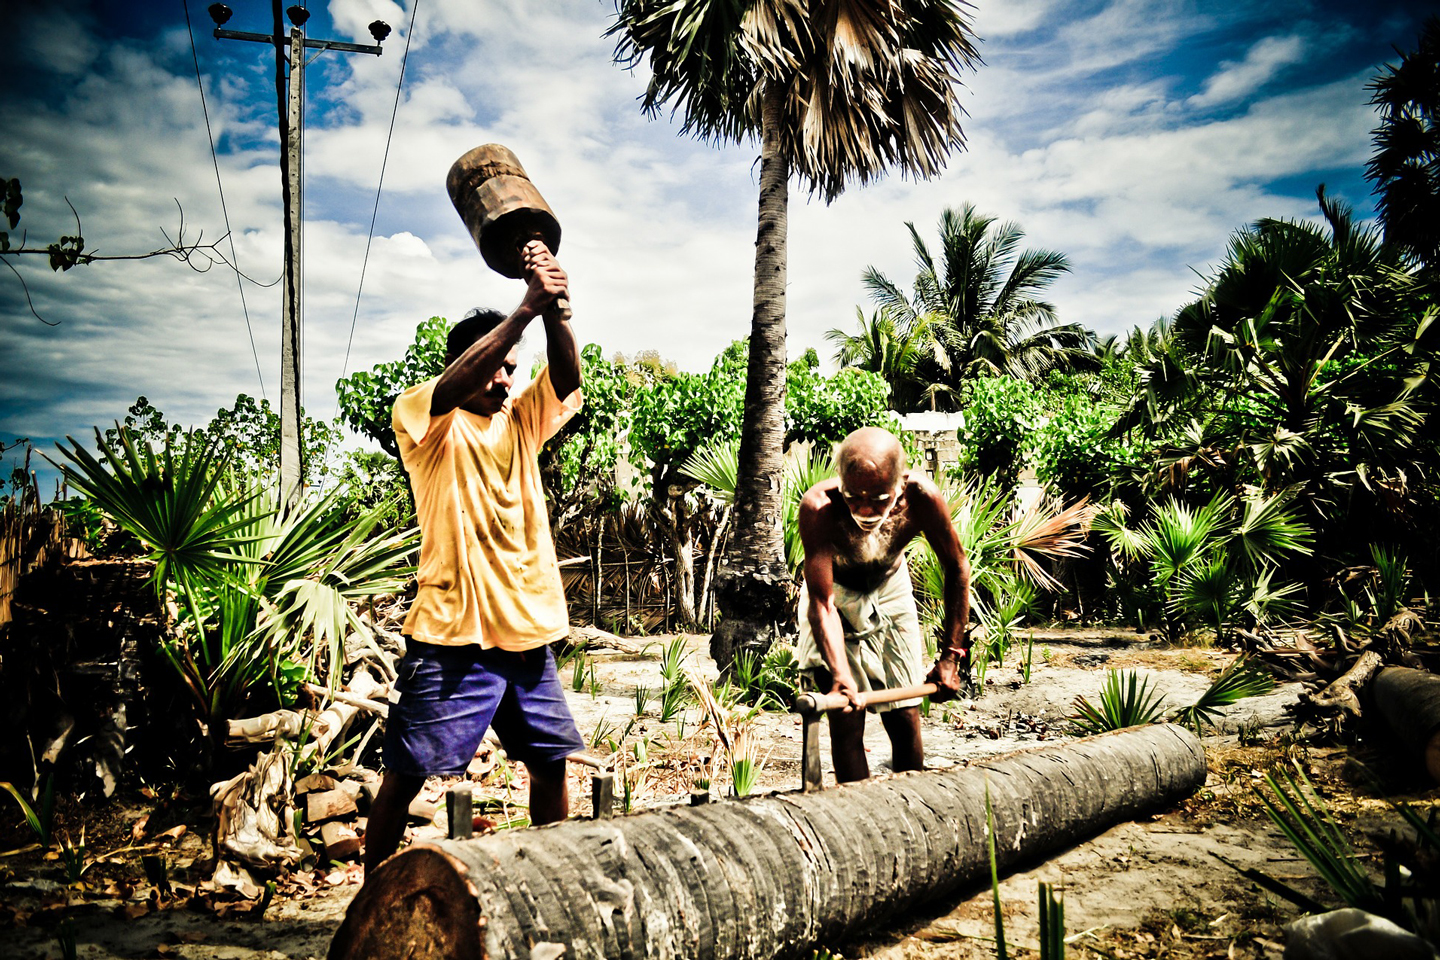 Locals at work in Northern Sri Lanka